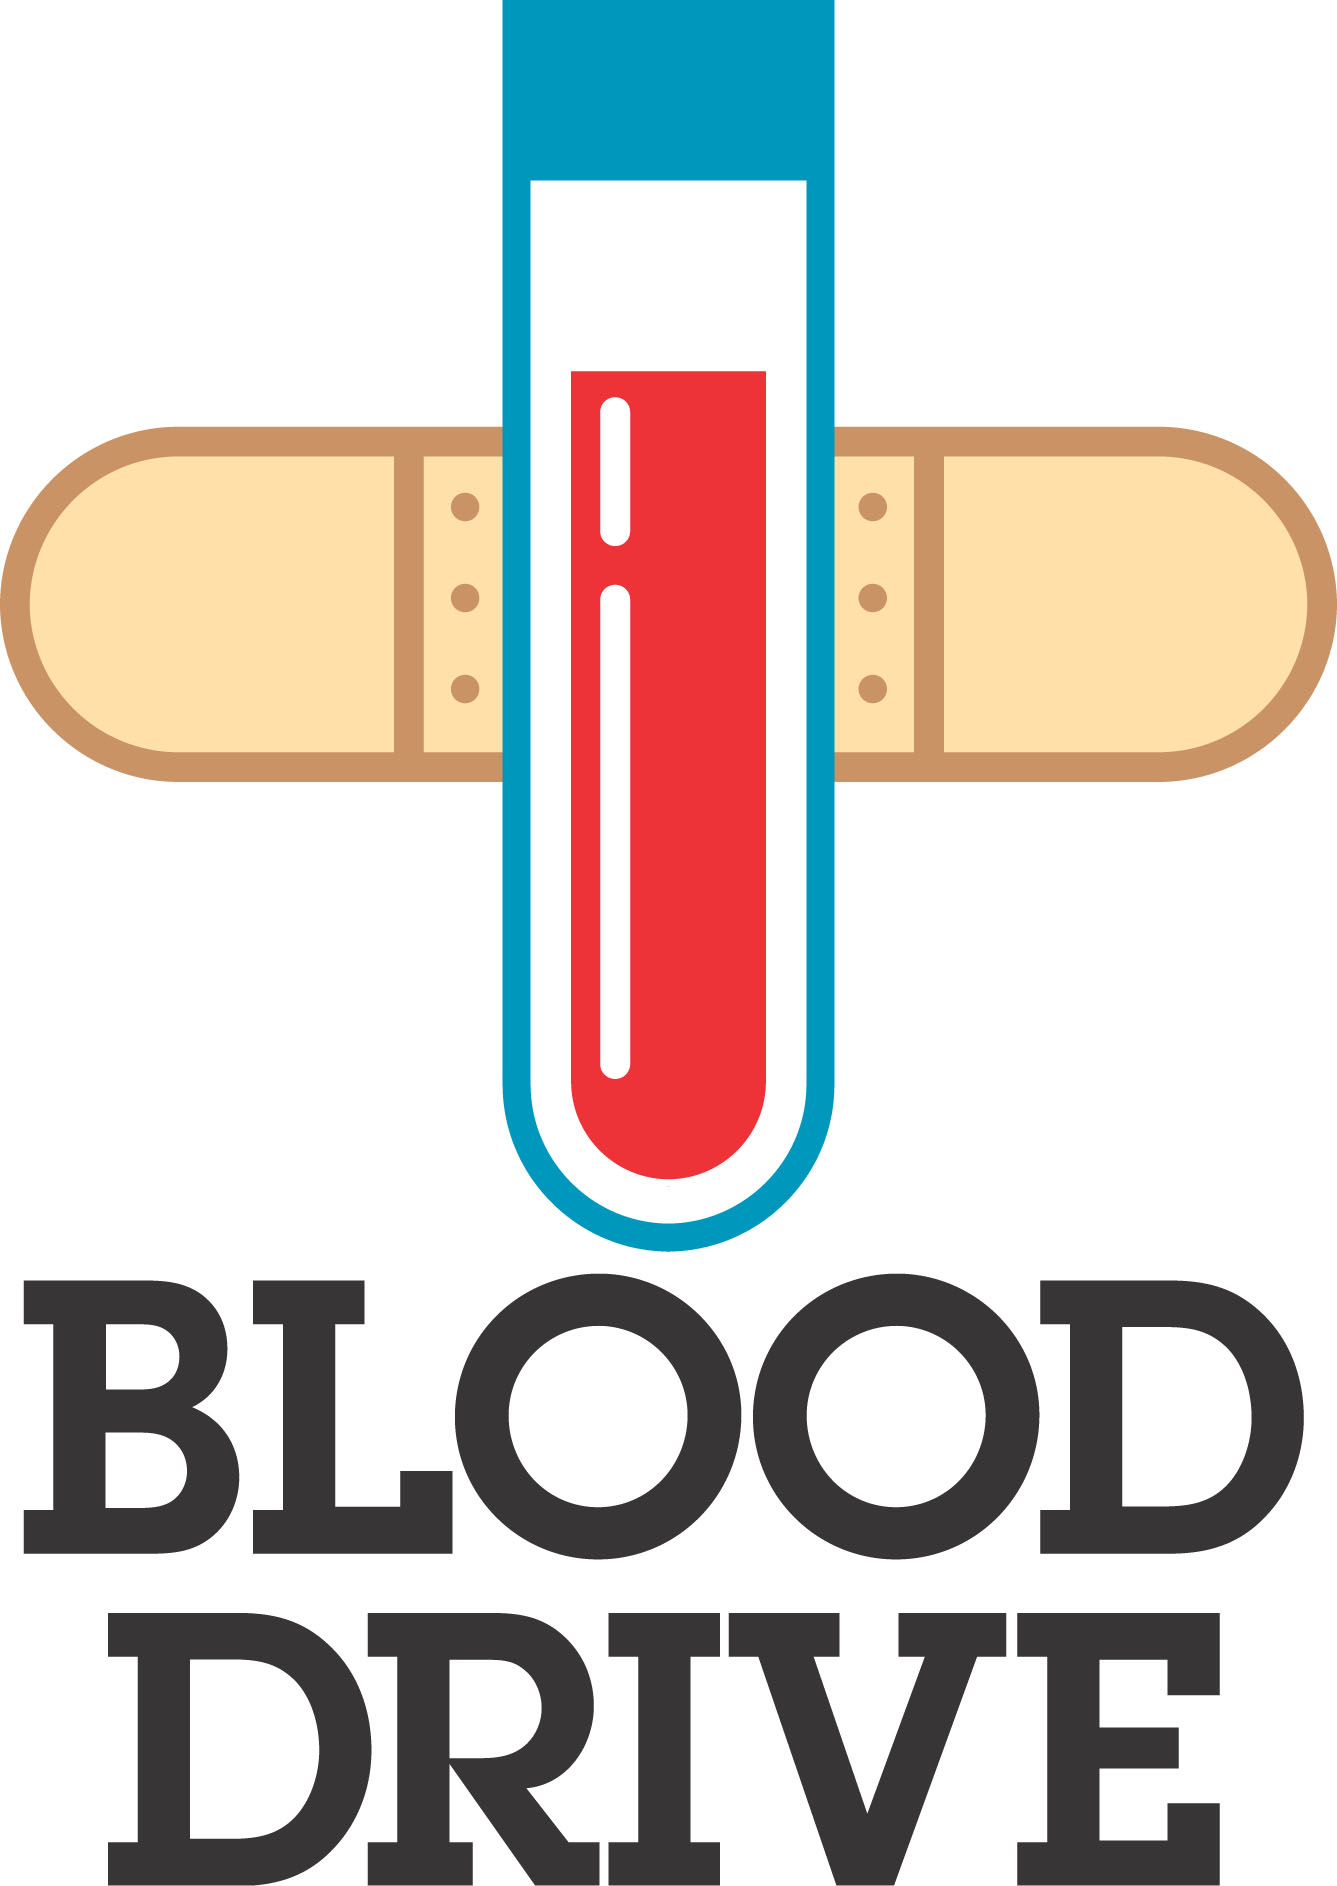 Blood Drive | Democratic Party of Washington County Wisconsin. Blood Drive Images - Clipart library